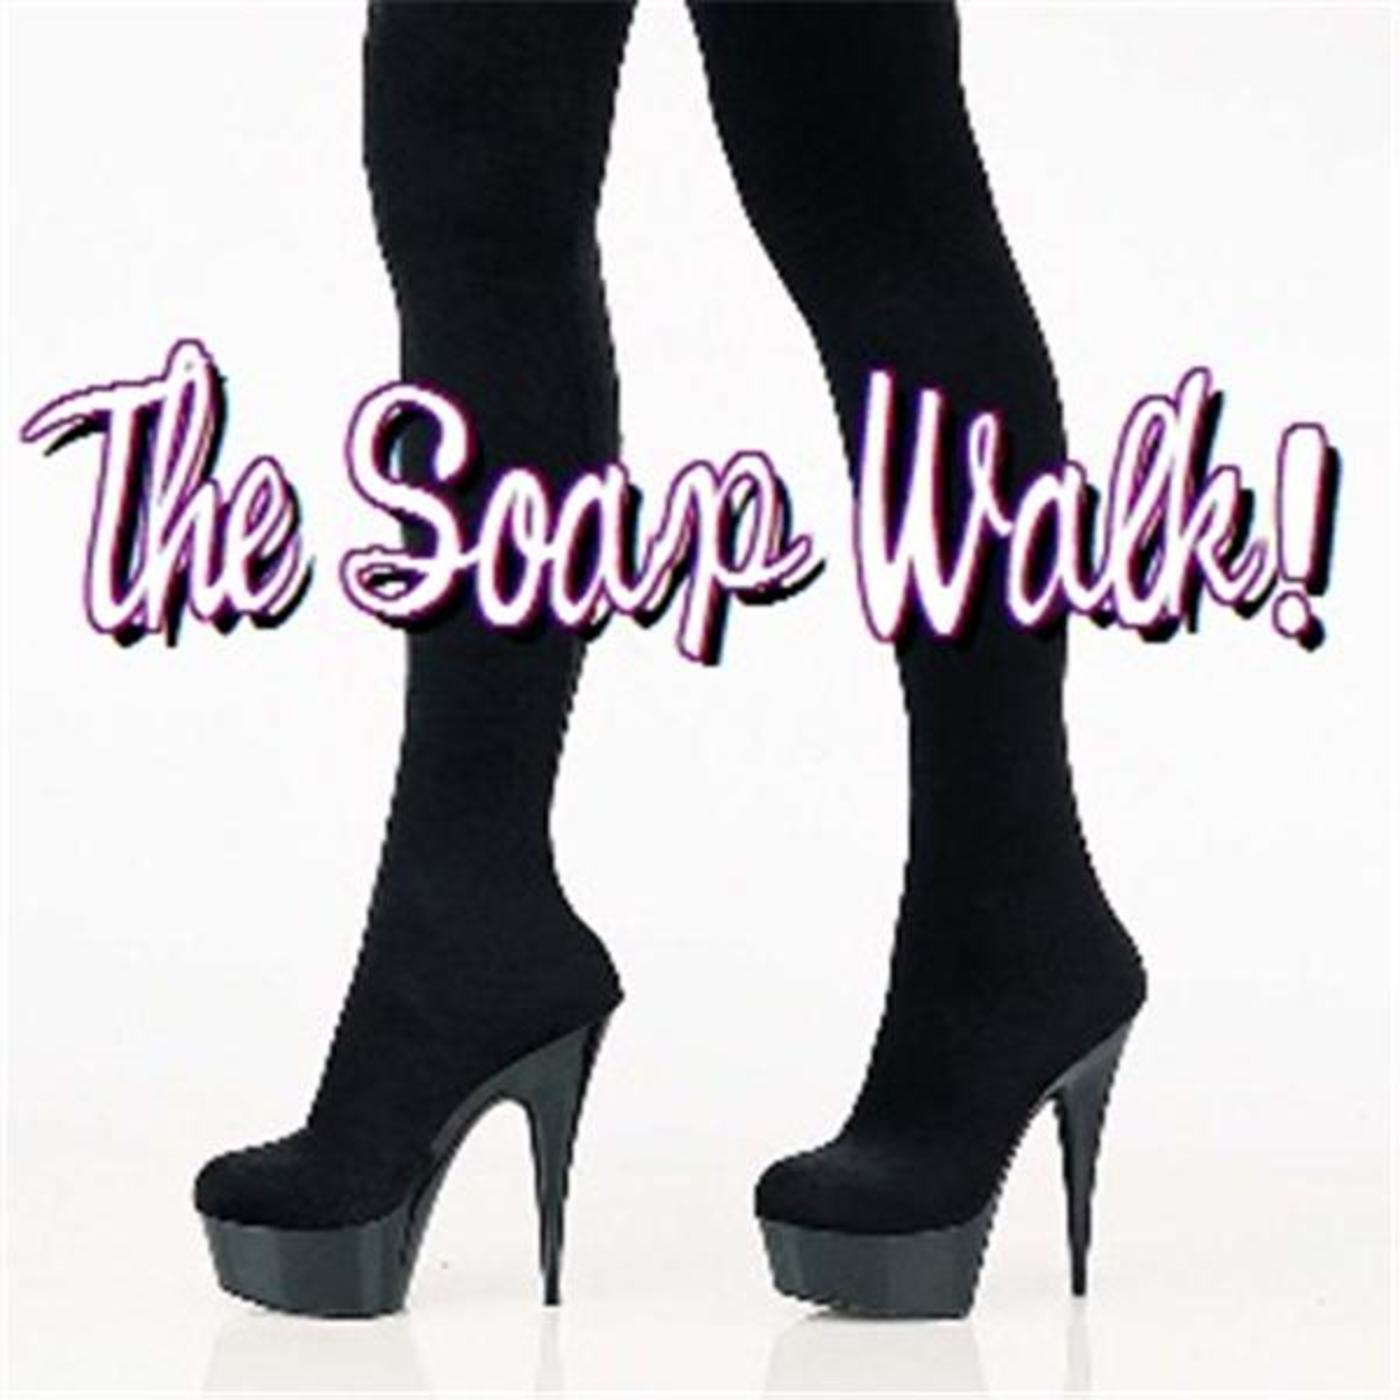 TheSoapWalk